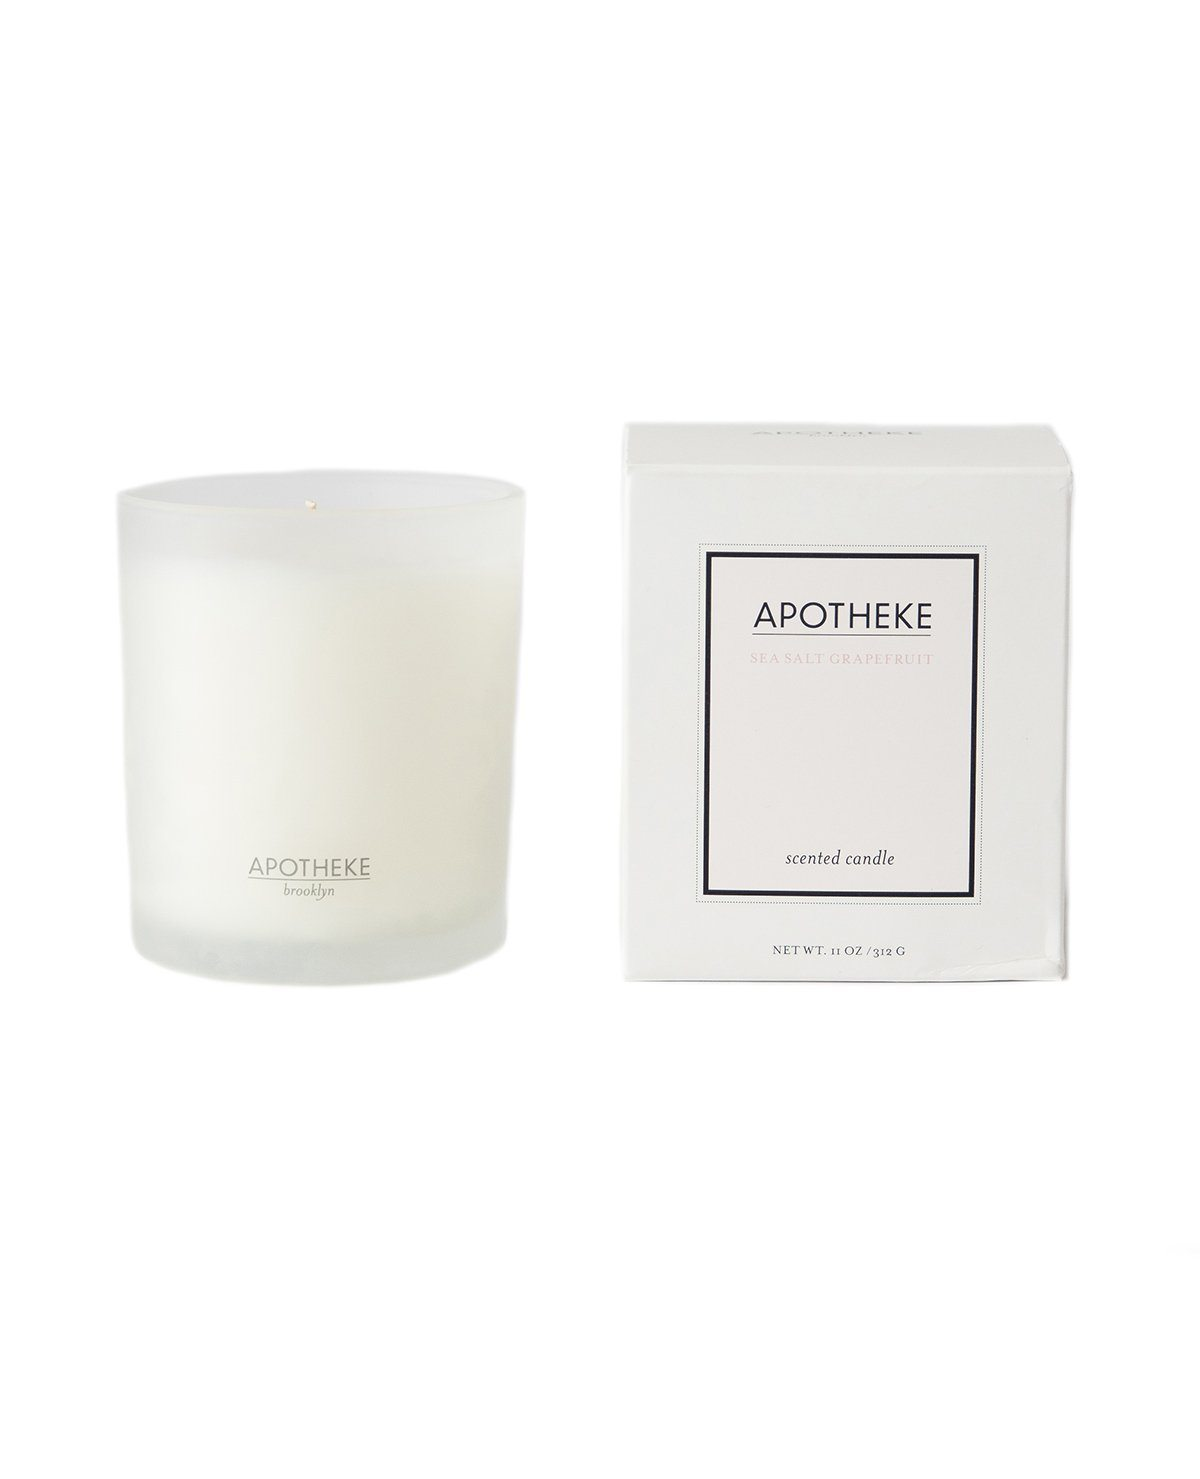 Apotheke%20Sea%20Salt%20Grapefruit%20Candle